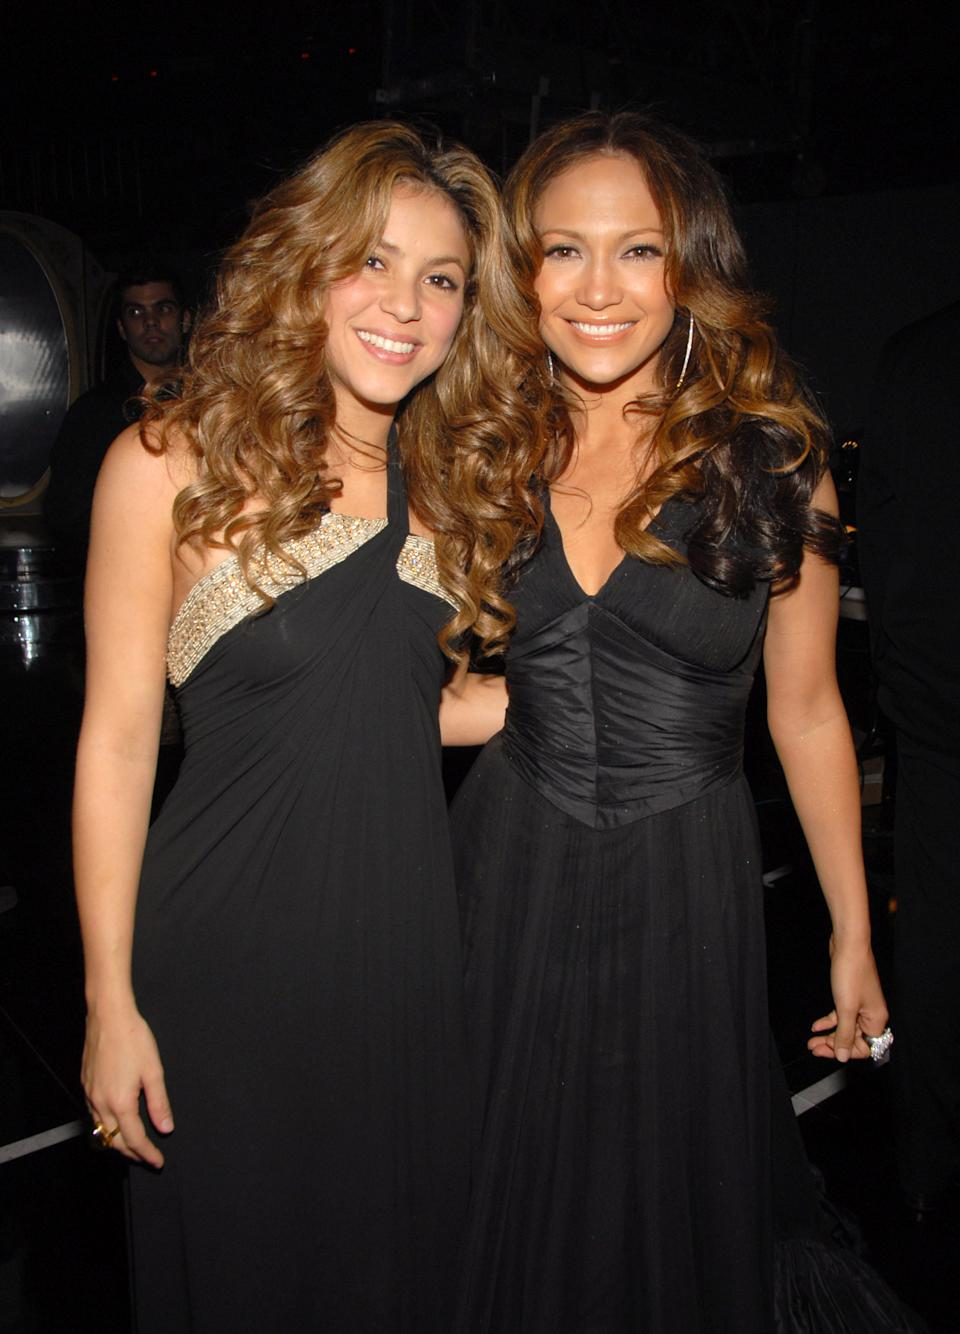 (EXCLUSIVE, Premium Rates Apply) Shakira and Jennifer Lopez **Exclusive Coverage** (Photo by Theo Wargo/WireImage for The Recording Academy)